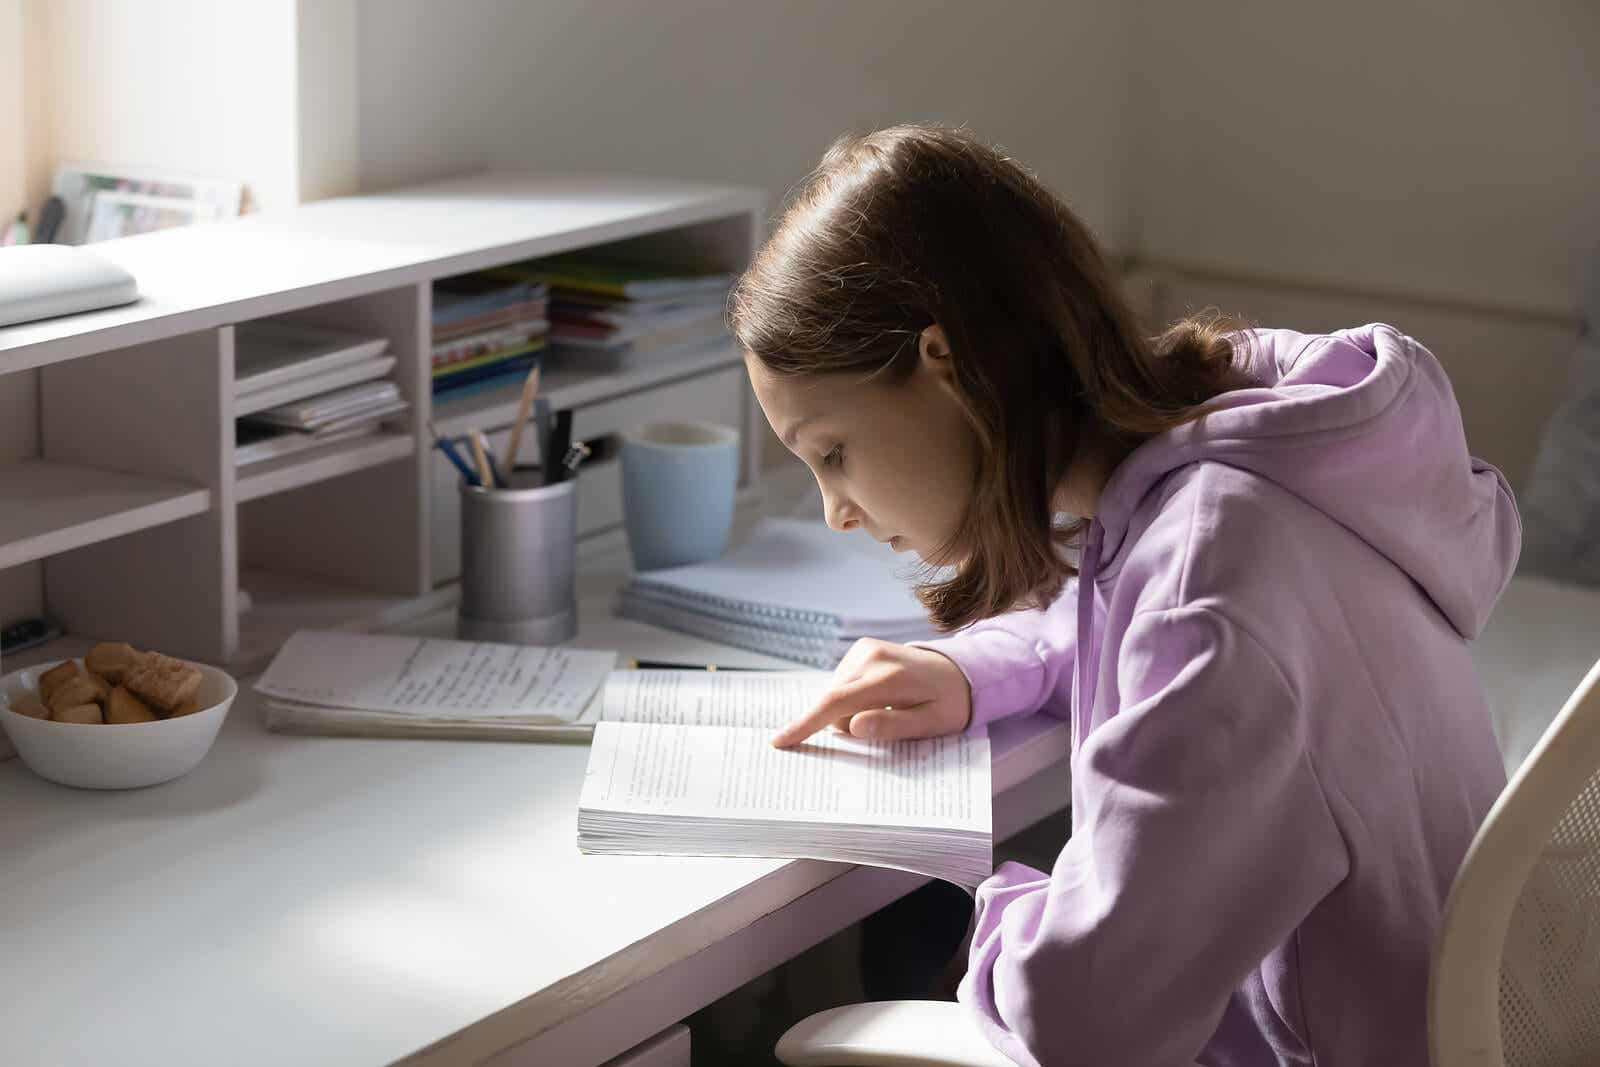 A preteen studying at her desk.